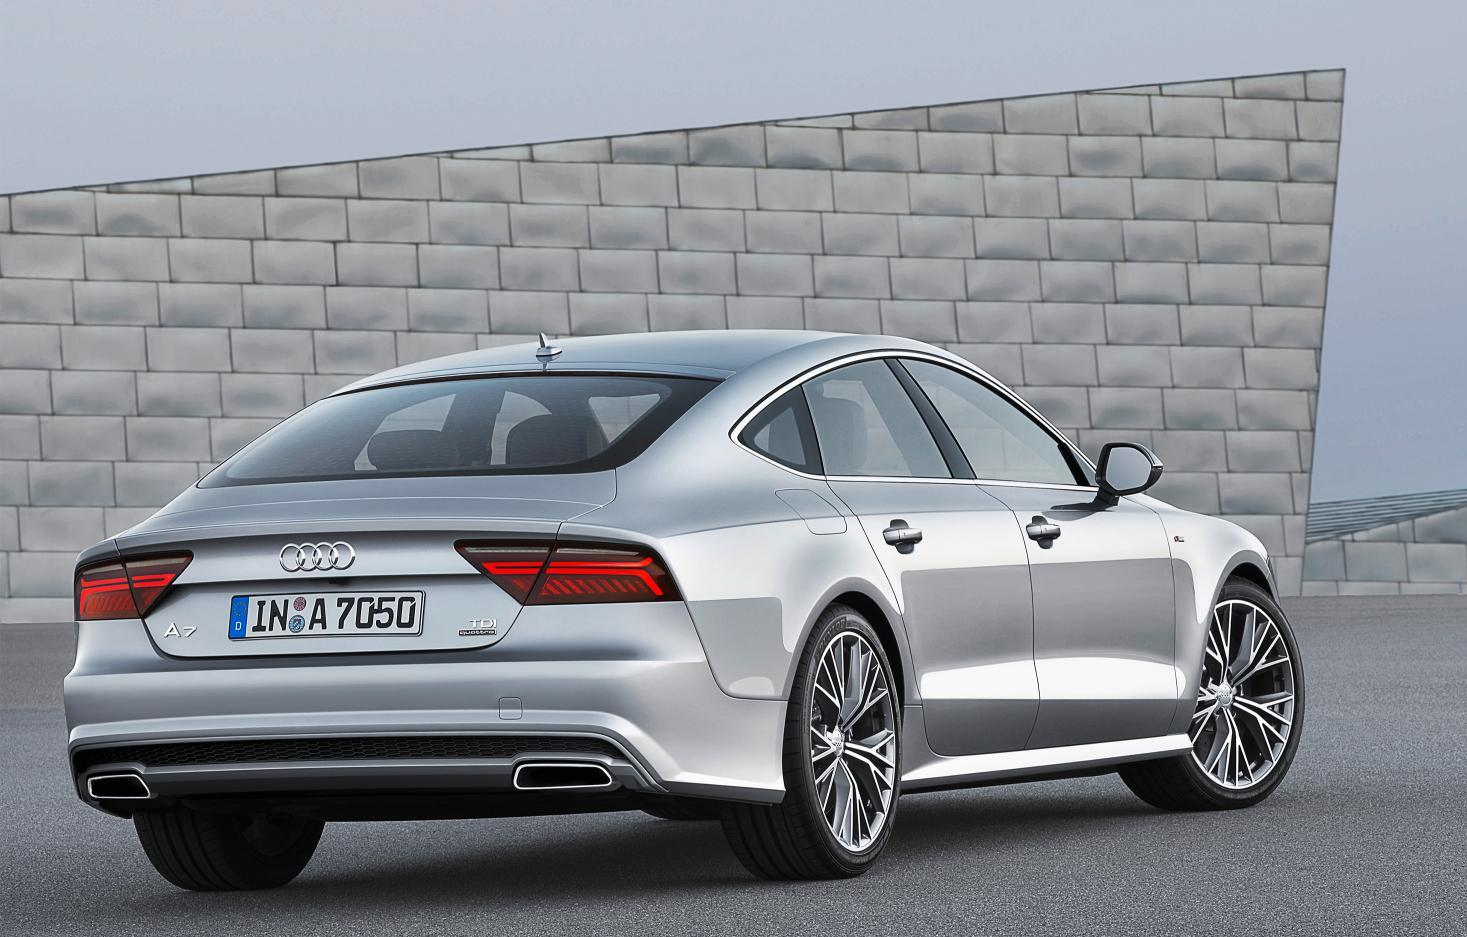 2015 audi a7 sportback unveiled pictures inside india car news. Black Bedroom Furniture Sets. Home Design Ideas